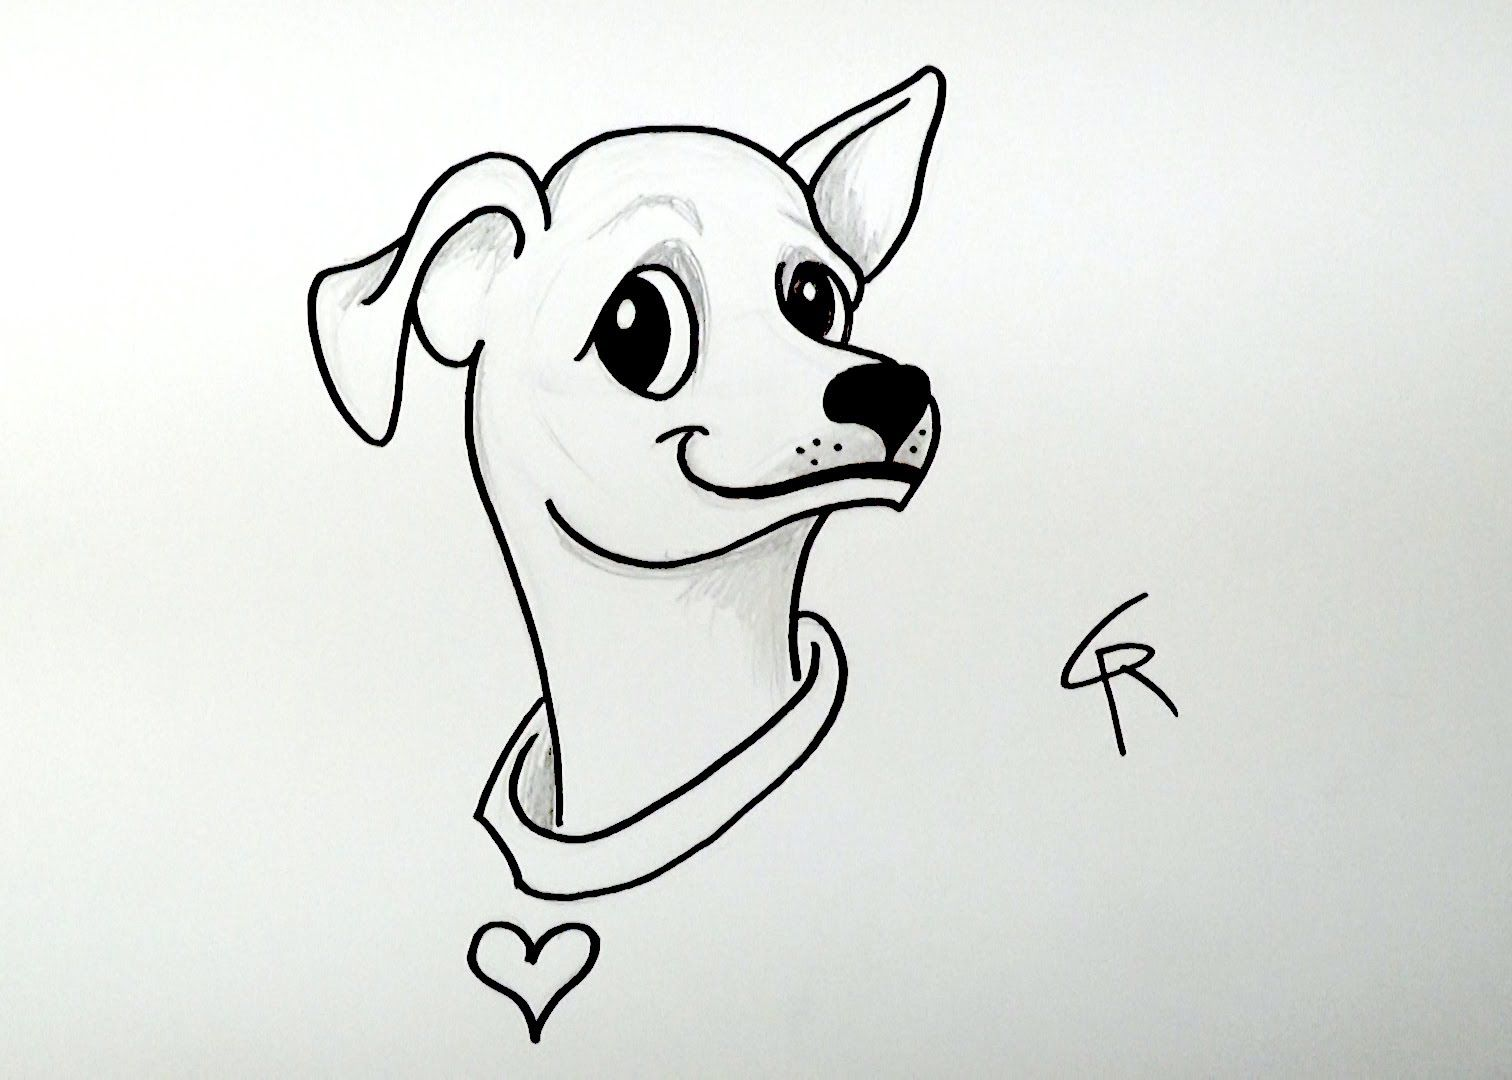 Learn How To Draw A Cute Cartoon Chihuahua iCanHazDraw